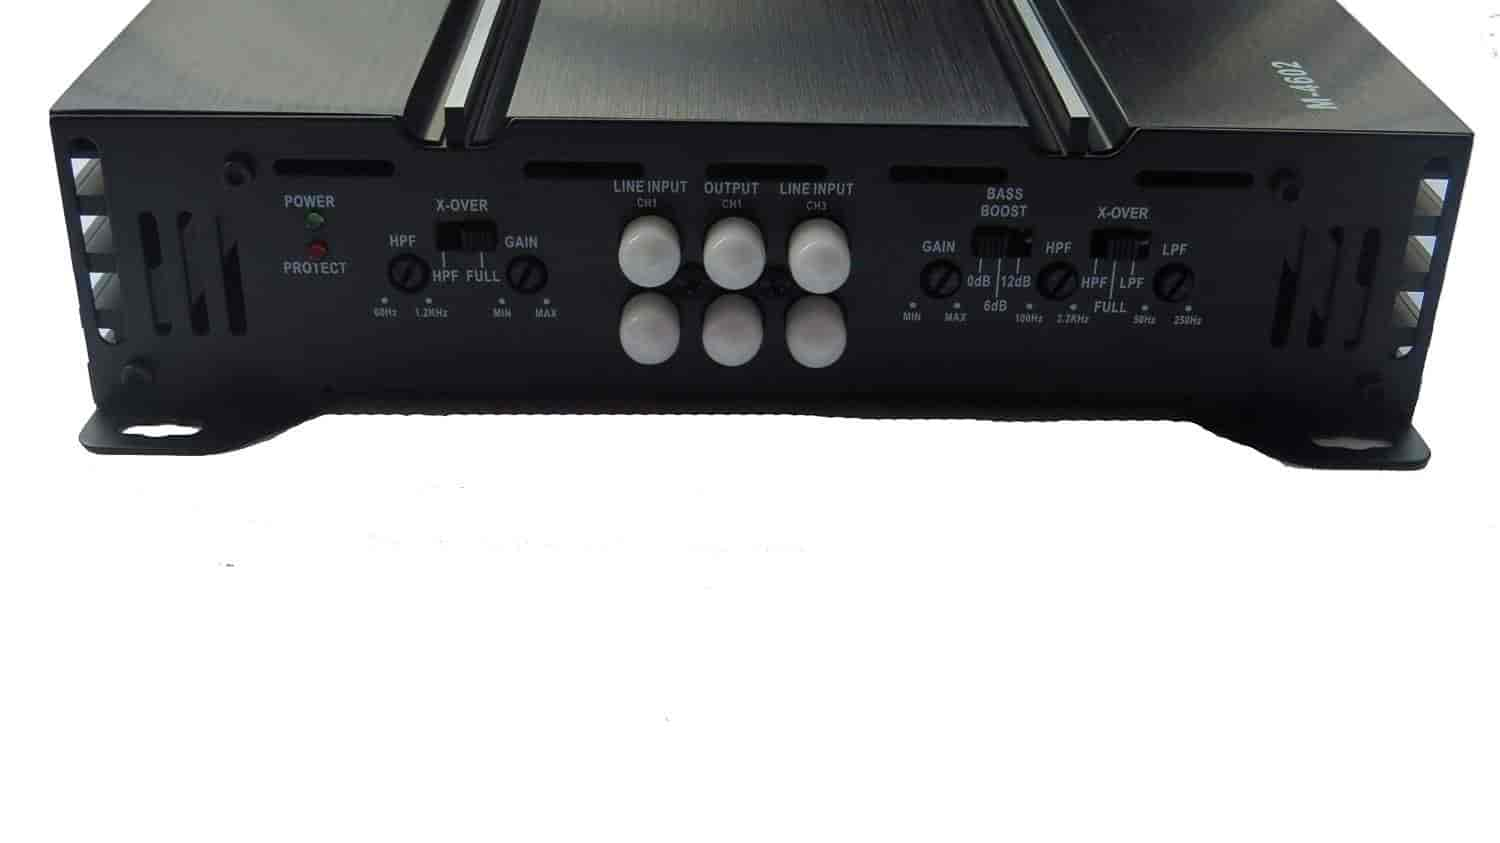 Buy Mrx 4 Channel High Power Amplifier Features Price Reviews Four